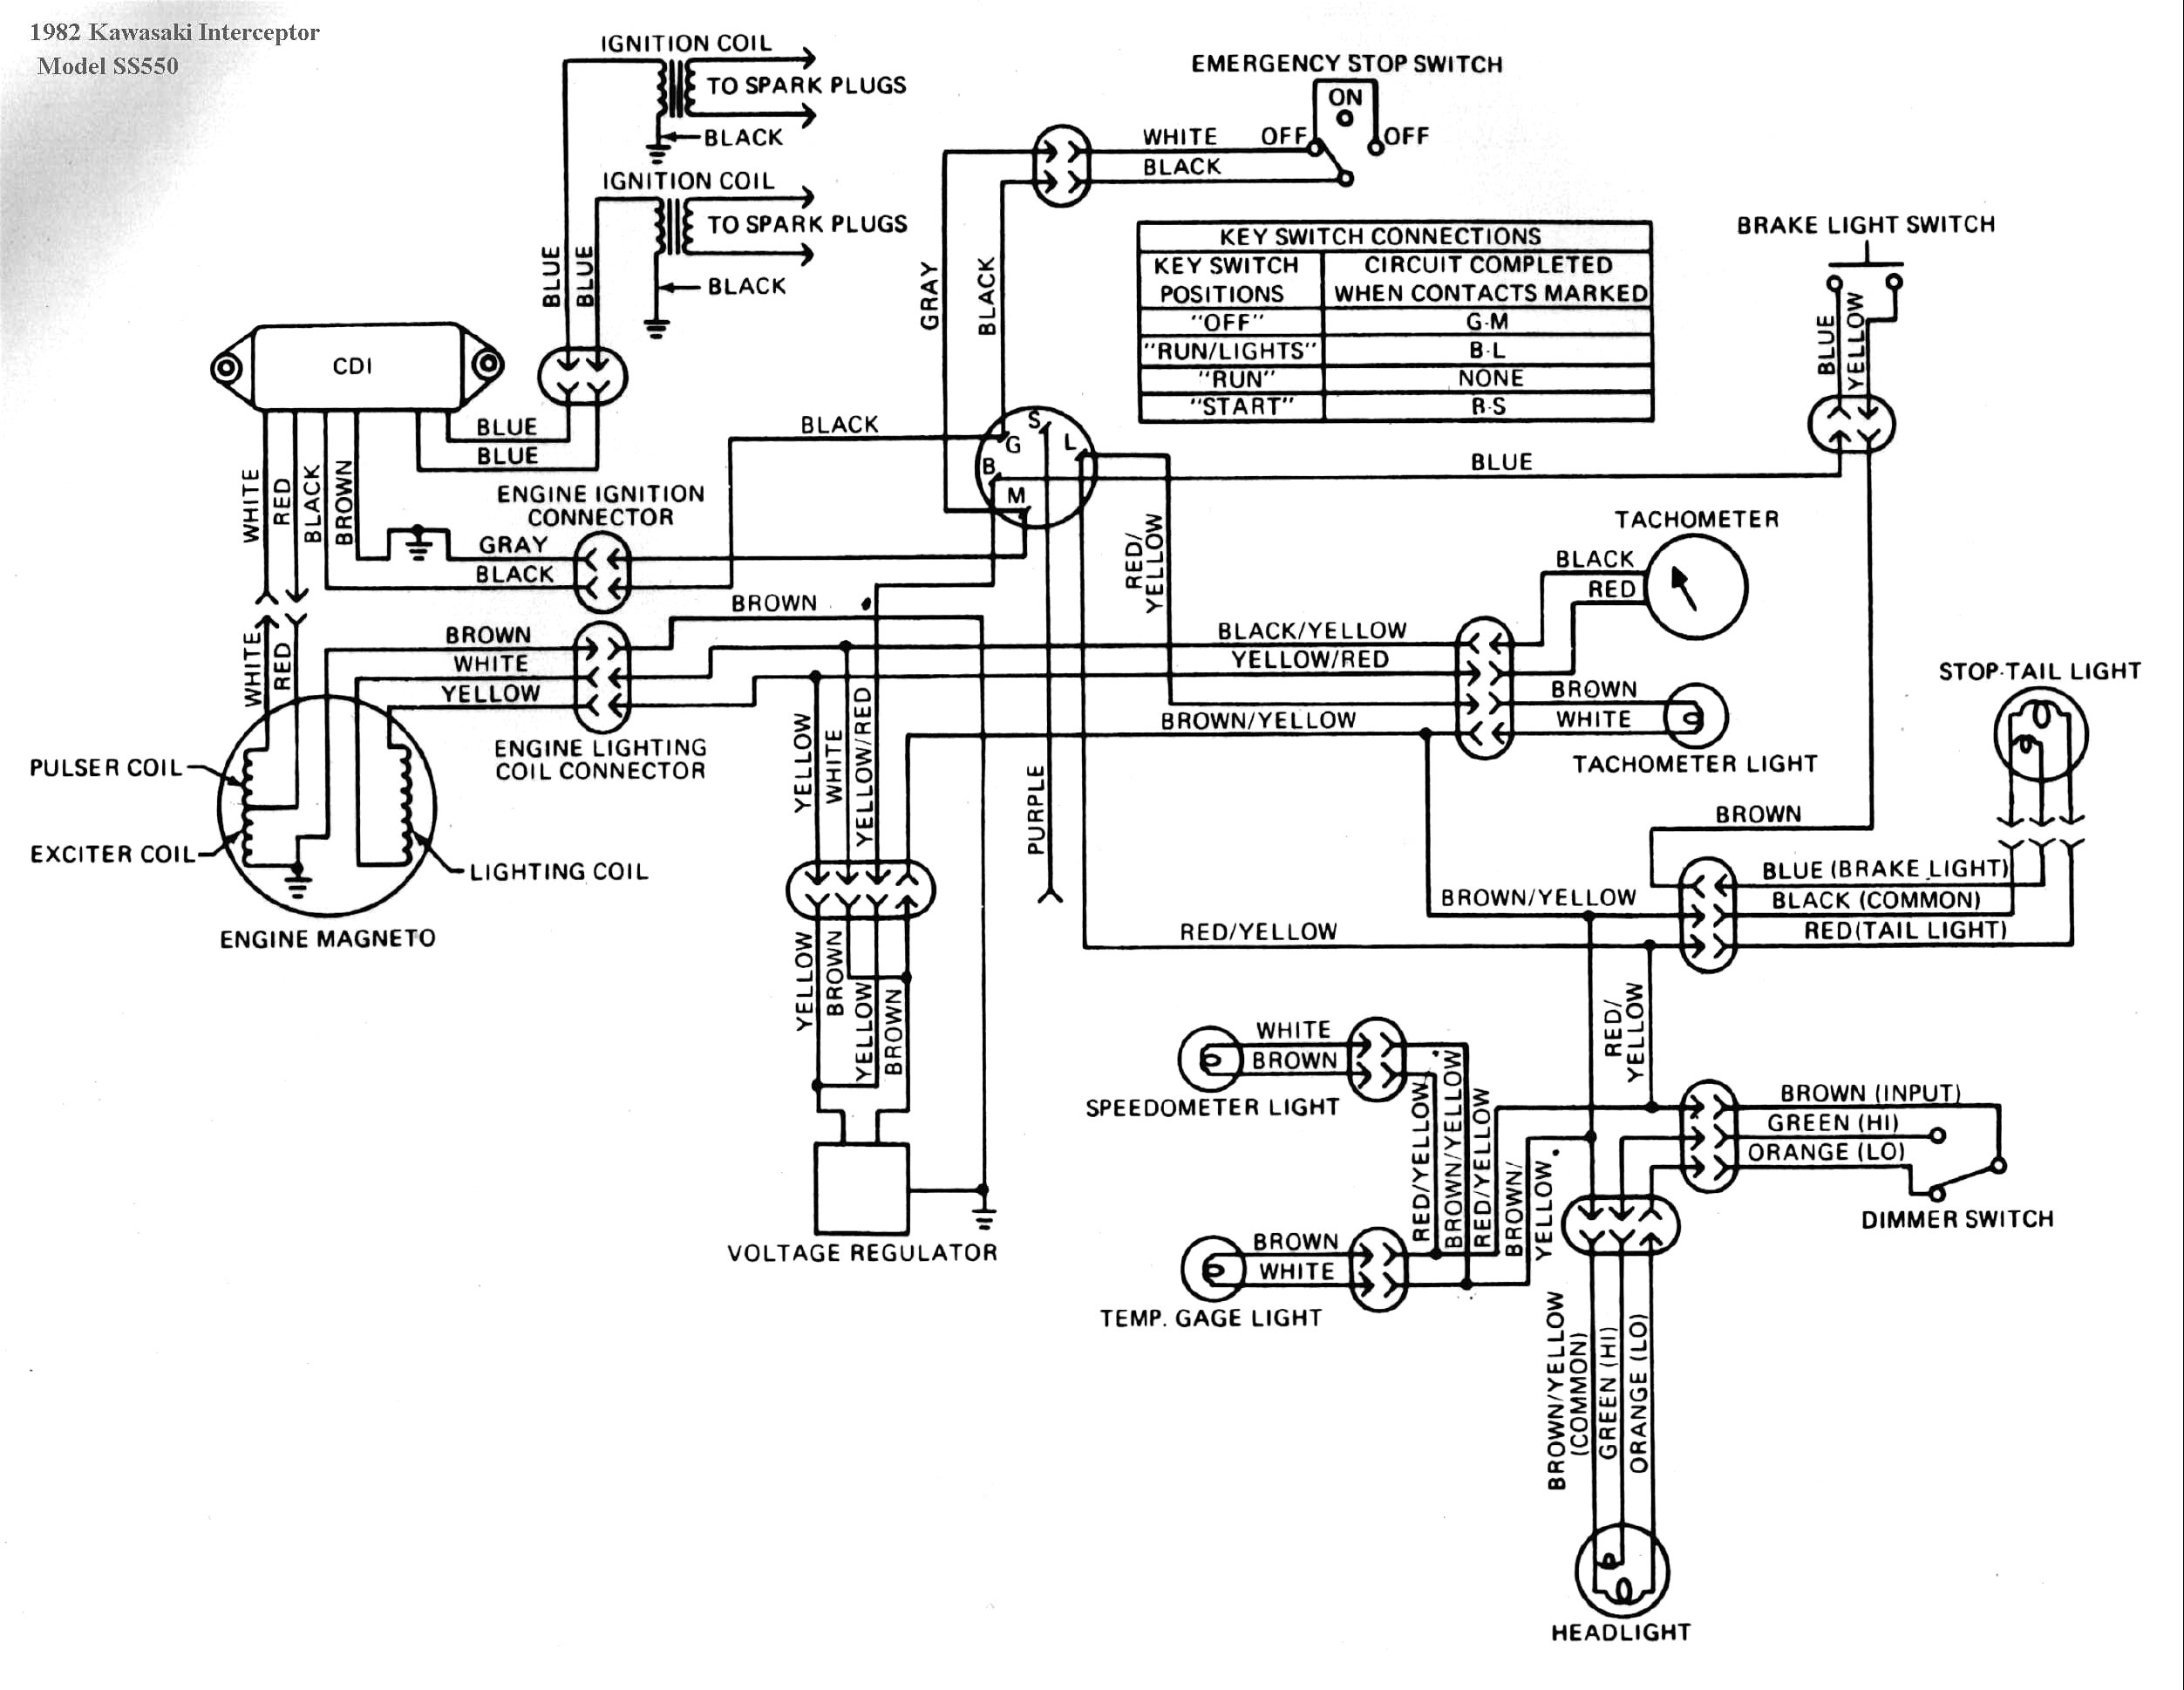 [TBQL_4184]  DIAGRAM] Weekend Warrior Trailer Wiring Diagram FULL Version HD Quality Wiring  Diagram - SAVIDGEEBOOKS.REPLIQUEMONTREDELUXE.FR | Kawasaki 250 Ltd Wiring Diagram |  | Replique Montre De Luxe